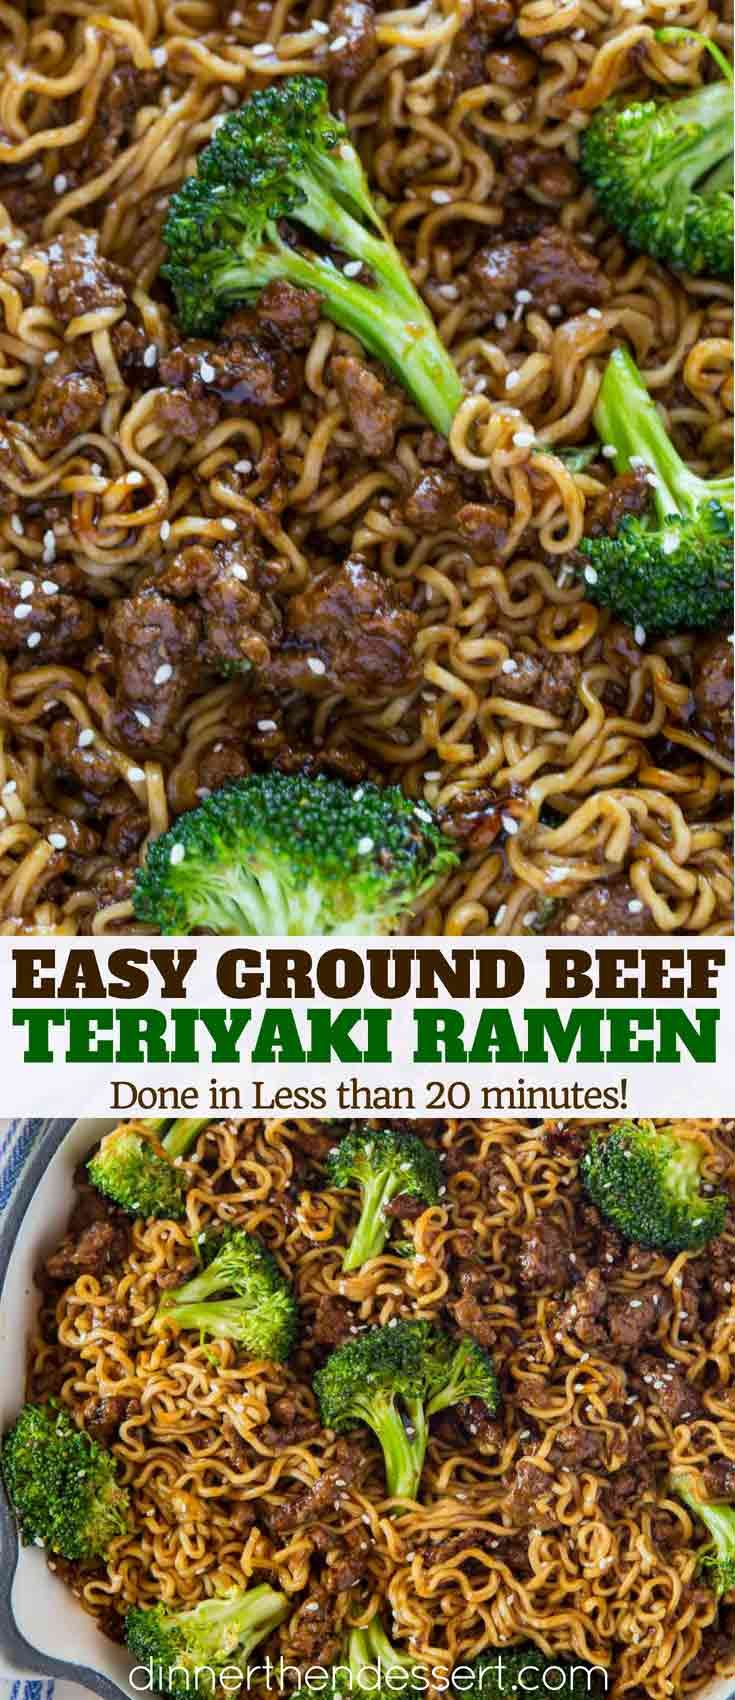 Ground Beef Teriyaki Ramen With A Five Ingredient Teriyaki Sauce Ramen And Broccol Ground Beef Recipes Healthy Beef Recipes Easy Quick Dinner With Ground Beef